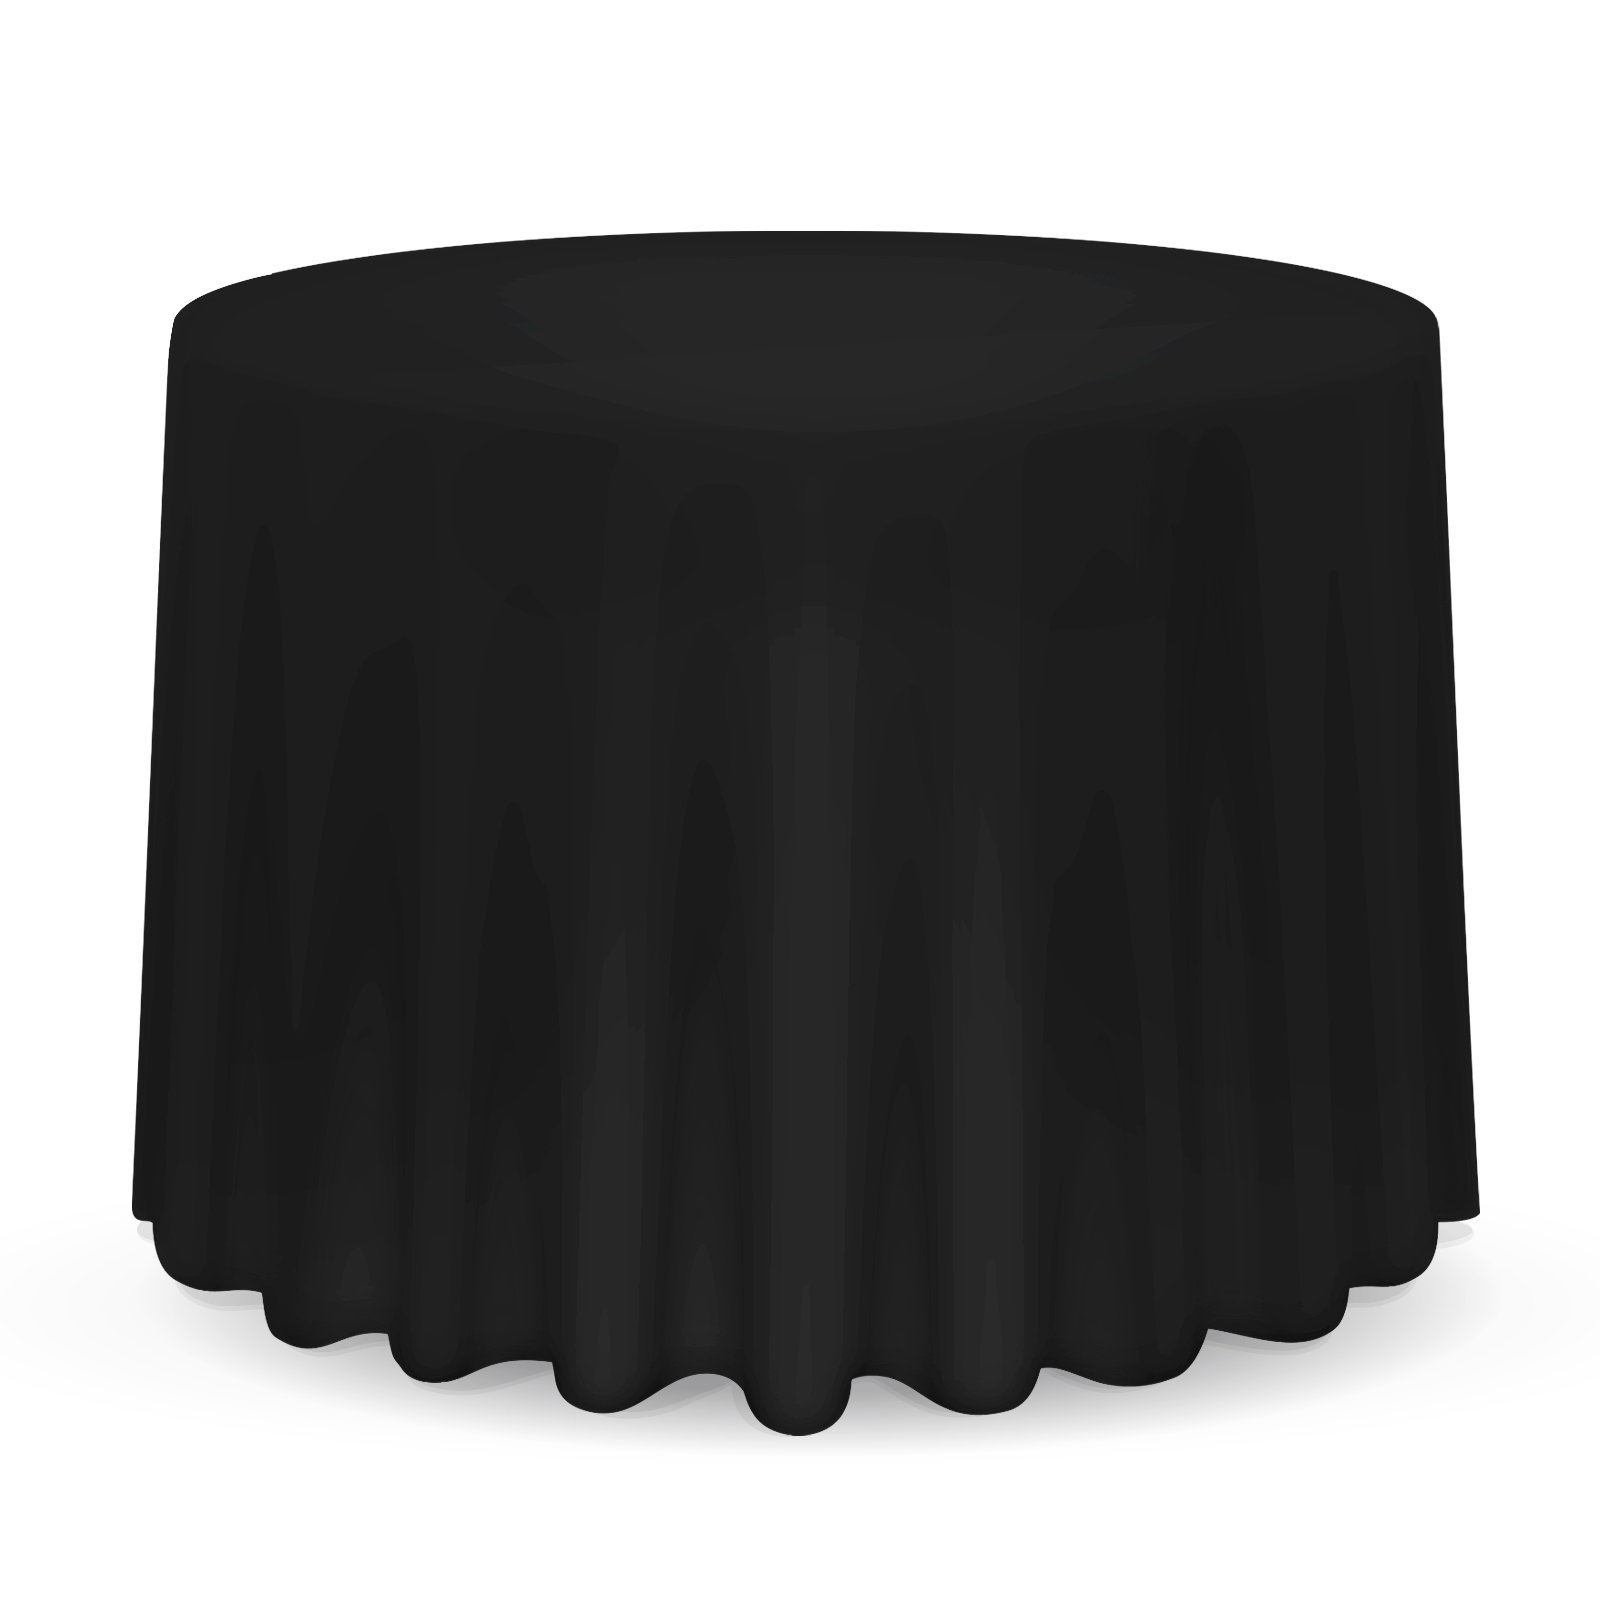 Lann's Linens - 10 Pack of 132'' Round Black Polyester Tablecloth Covers for Weddings, Banquets, or Restaurants